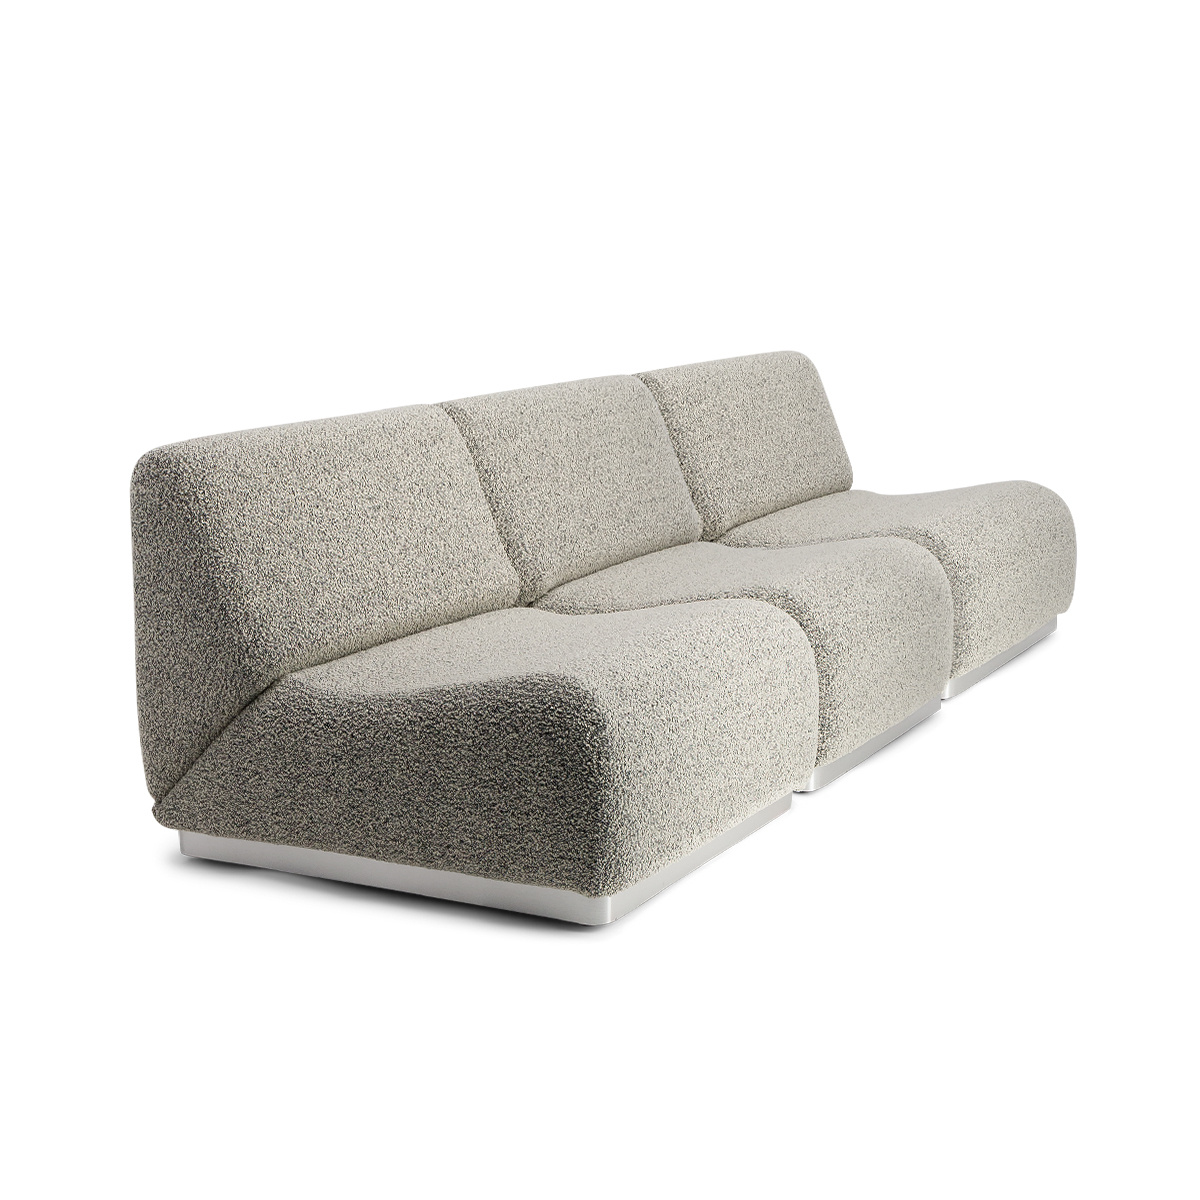 Rotondo Modular Sofa in Black and White Curly Wool